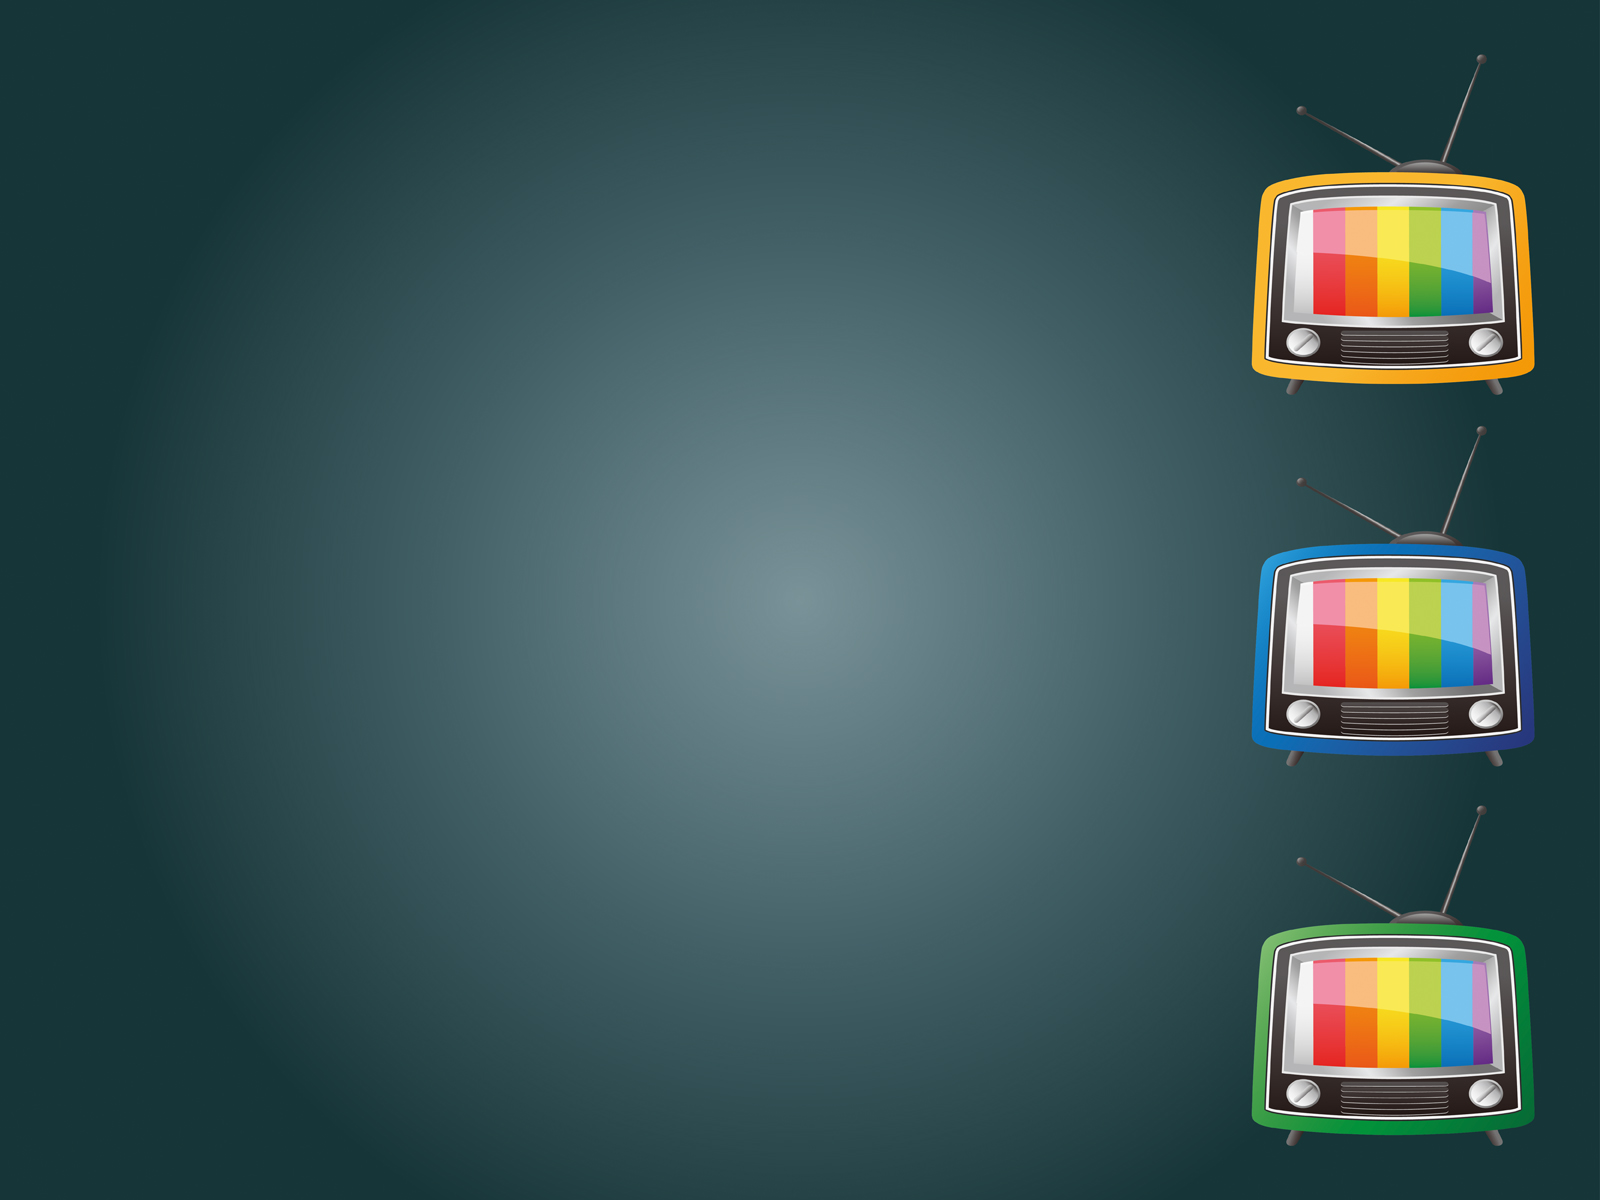 Online Tv Television Backgrounds 3d Design HD Wallpapers Download Free Images Wallpaper [1000image.com]